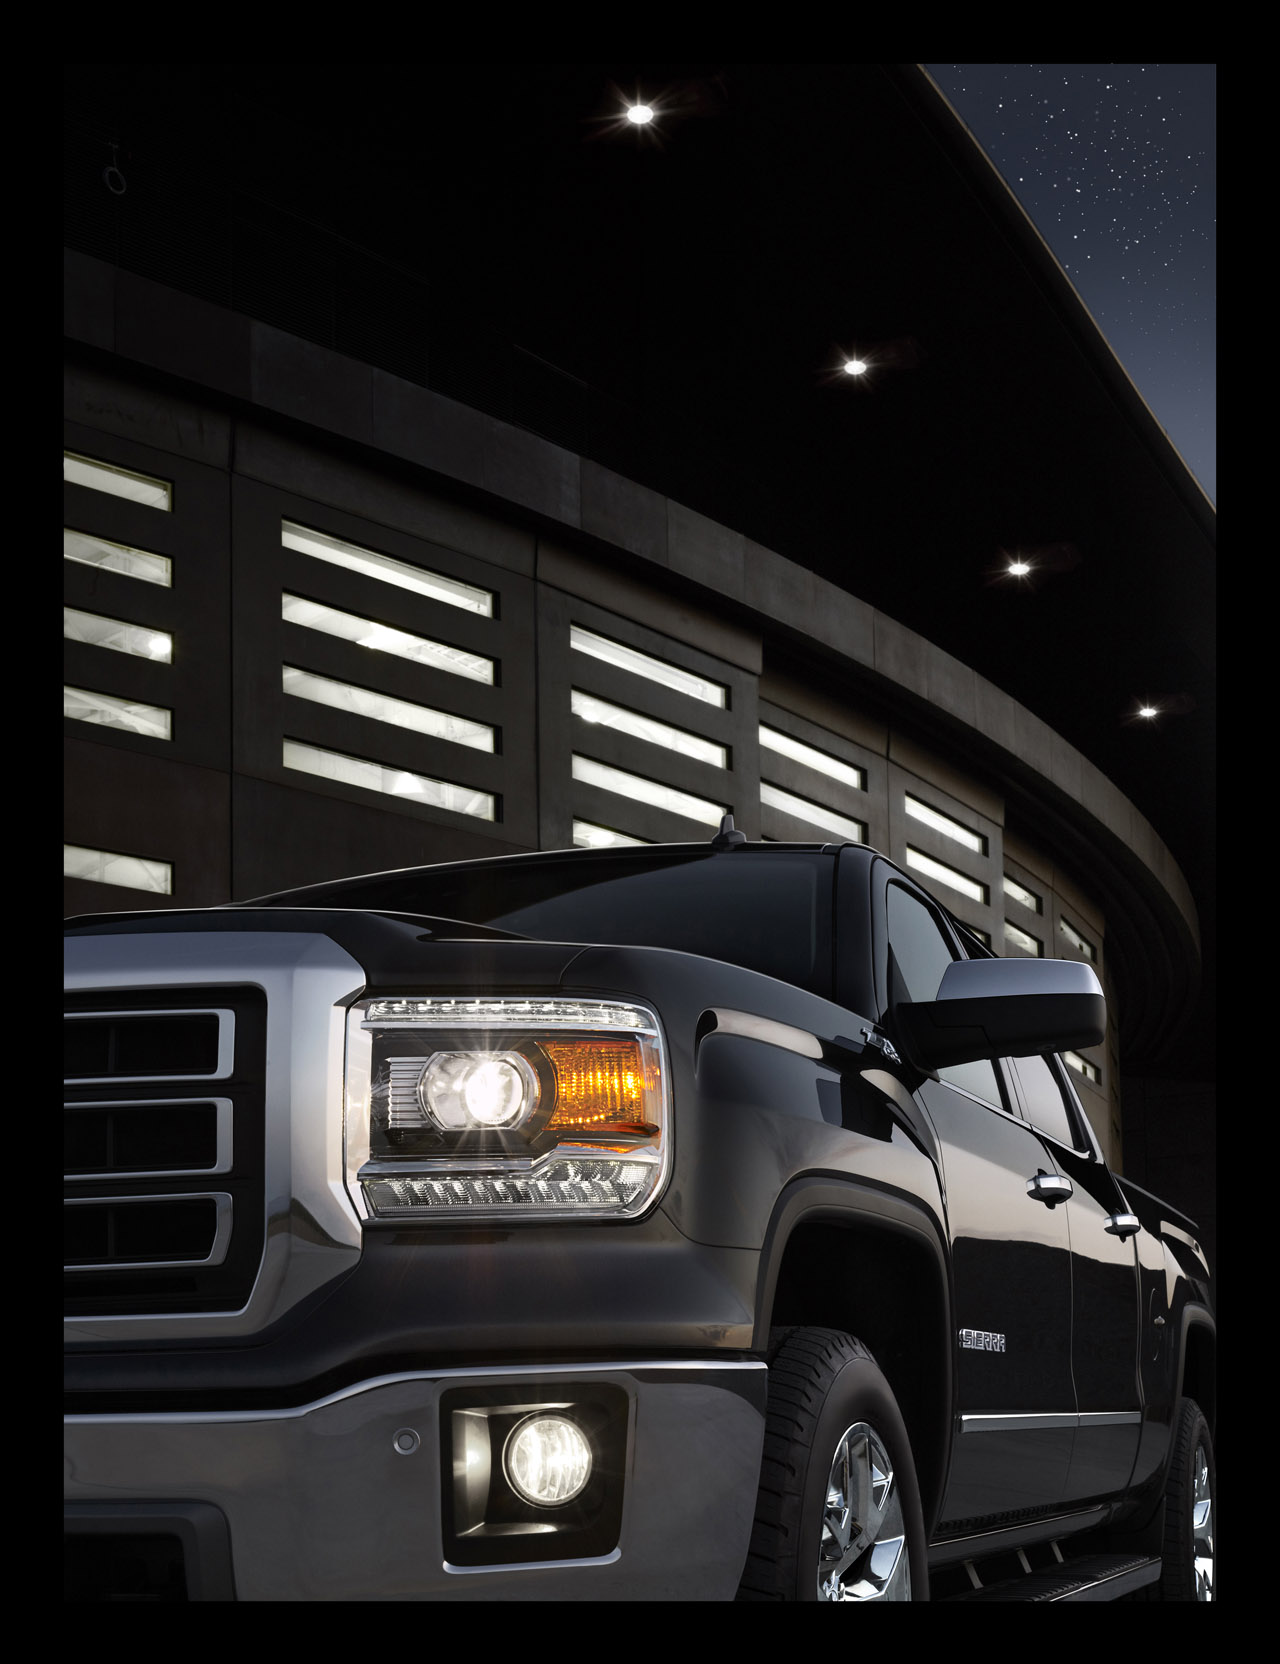 2014 gmc sierra 4 3l v6 to offer segment best 305 lb ft autoblog. Black Bedroom Furniture Sets. Home Design Ideas